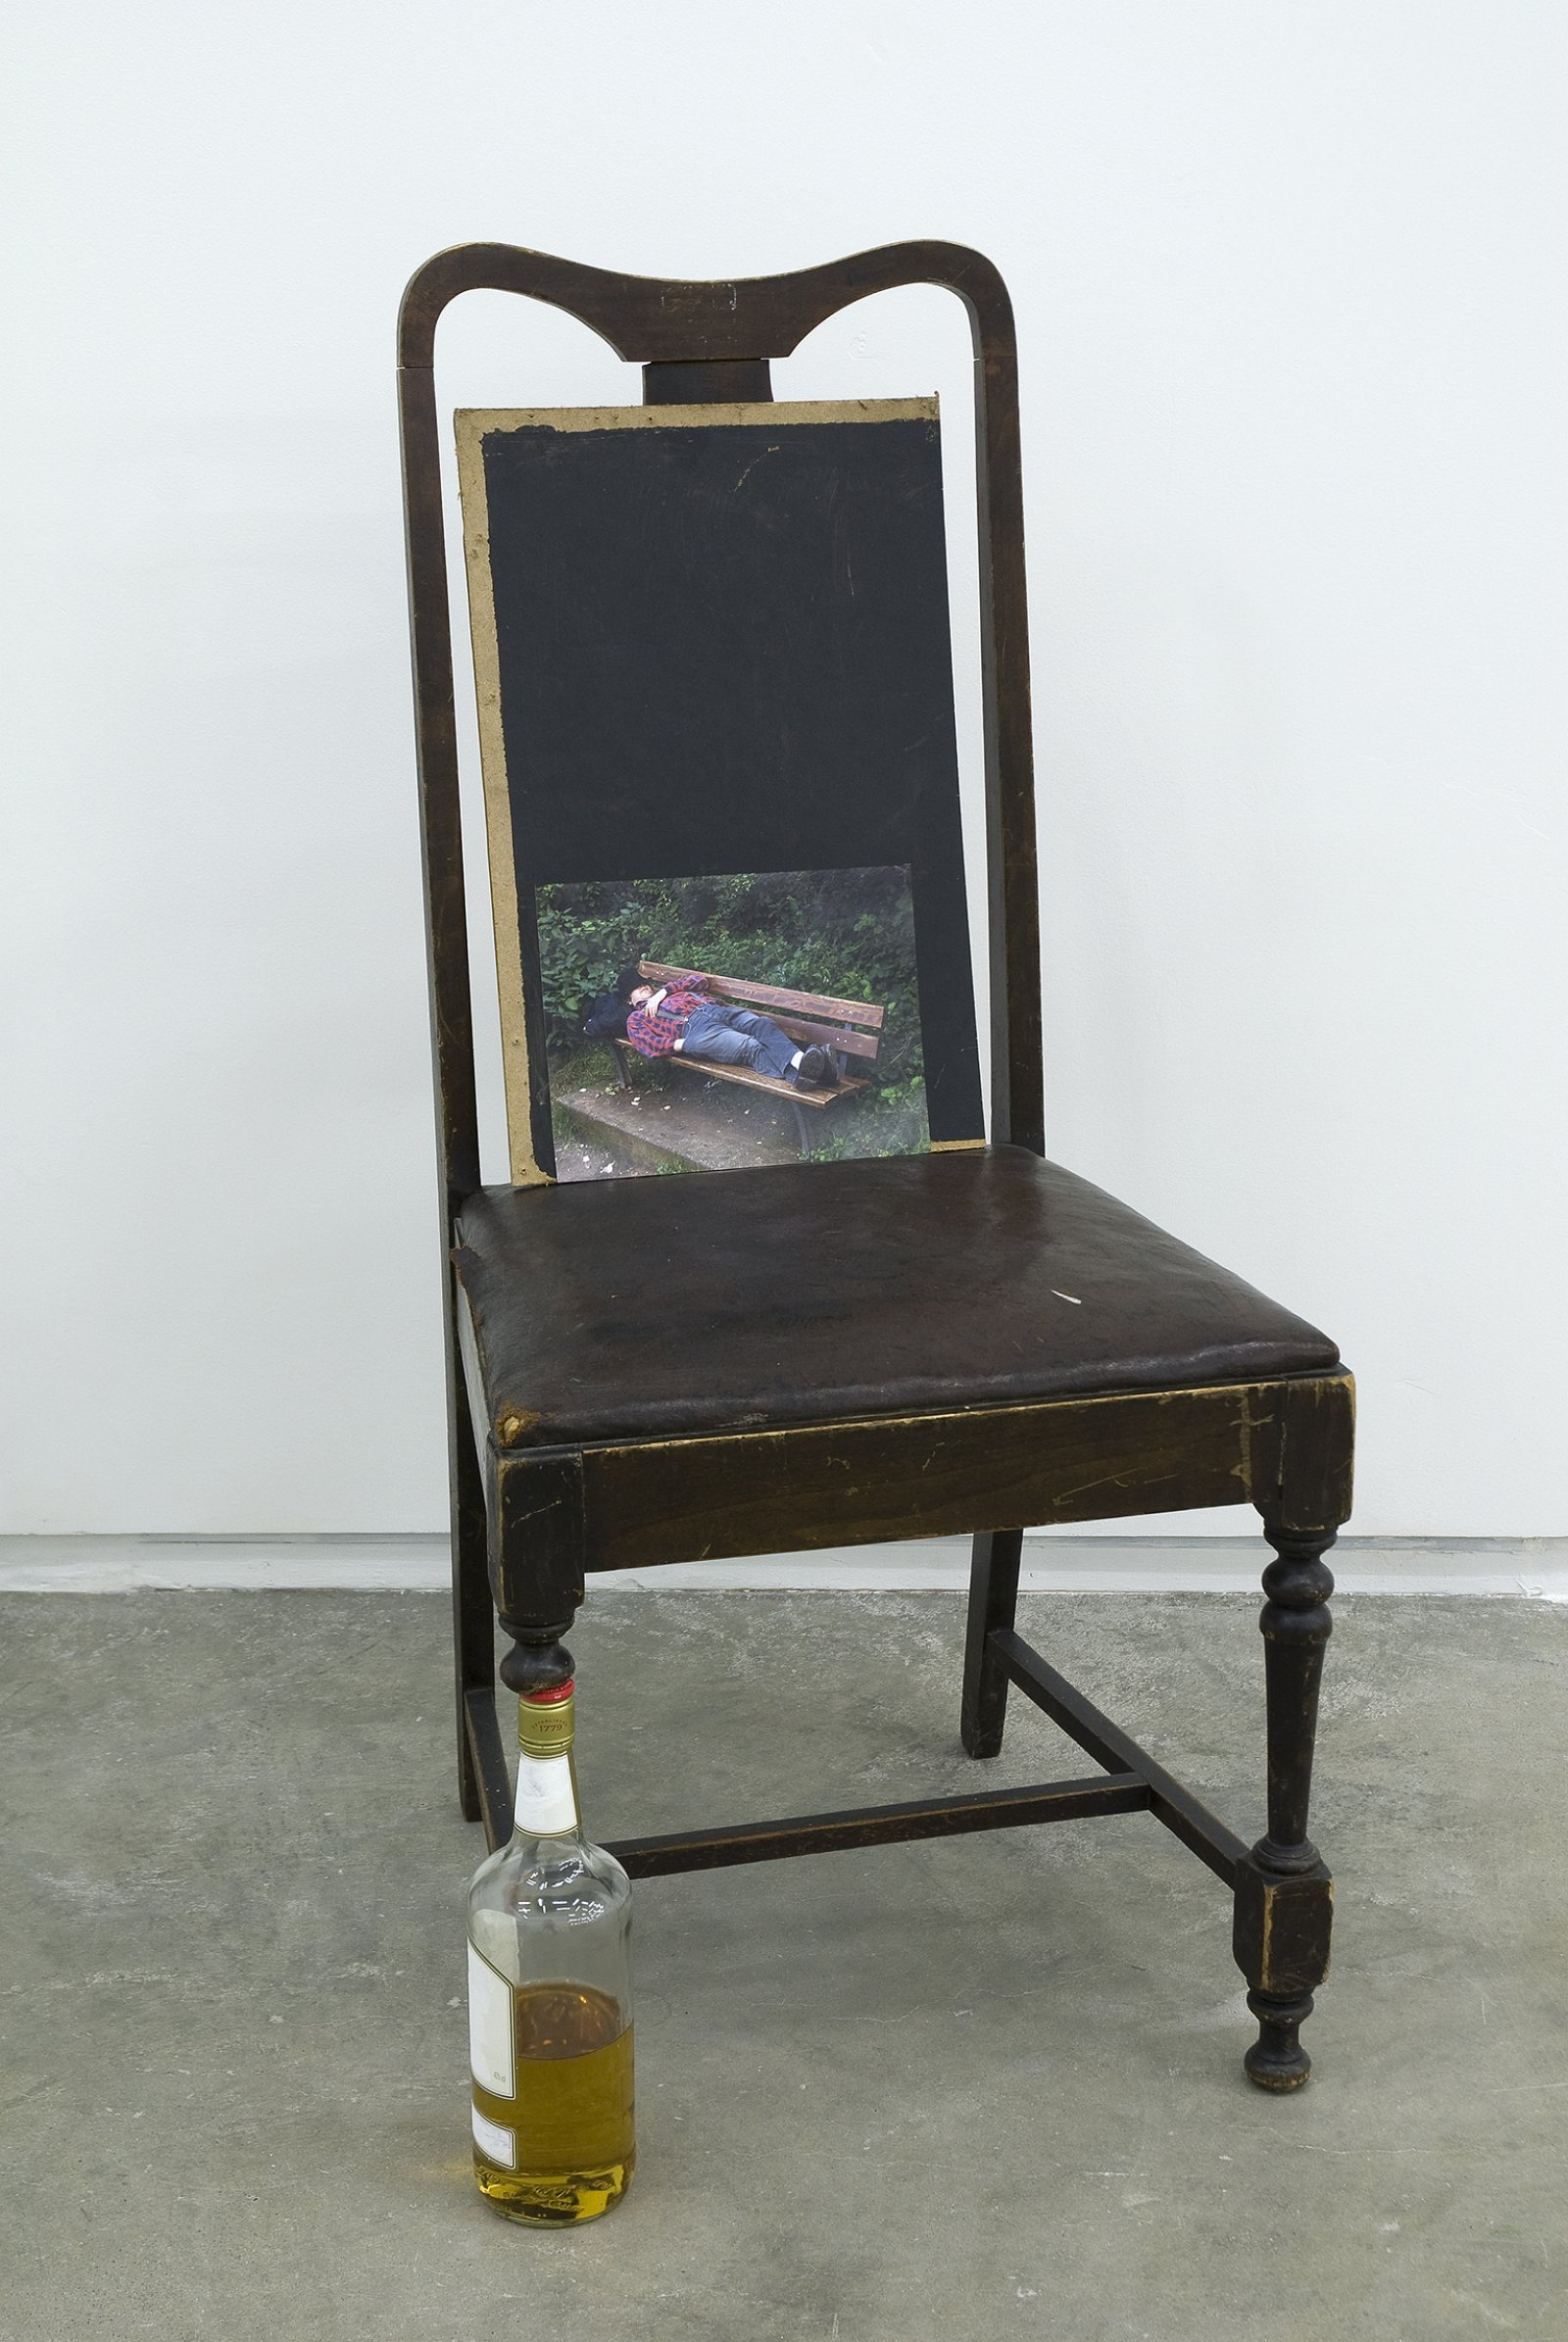 Gareth Moore, Untitled from Uncertain Pilgrimage, 2009, broken chair, whiskey, paint, wood, 'Friend in Theatre, Asleep' lightJet print, 40 x 19 x 18 in. (102 x 47 x 44 cm) by Gareth Moore